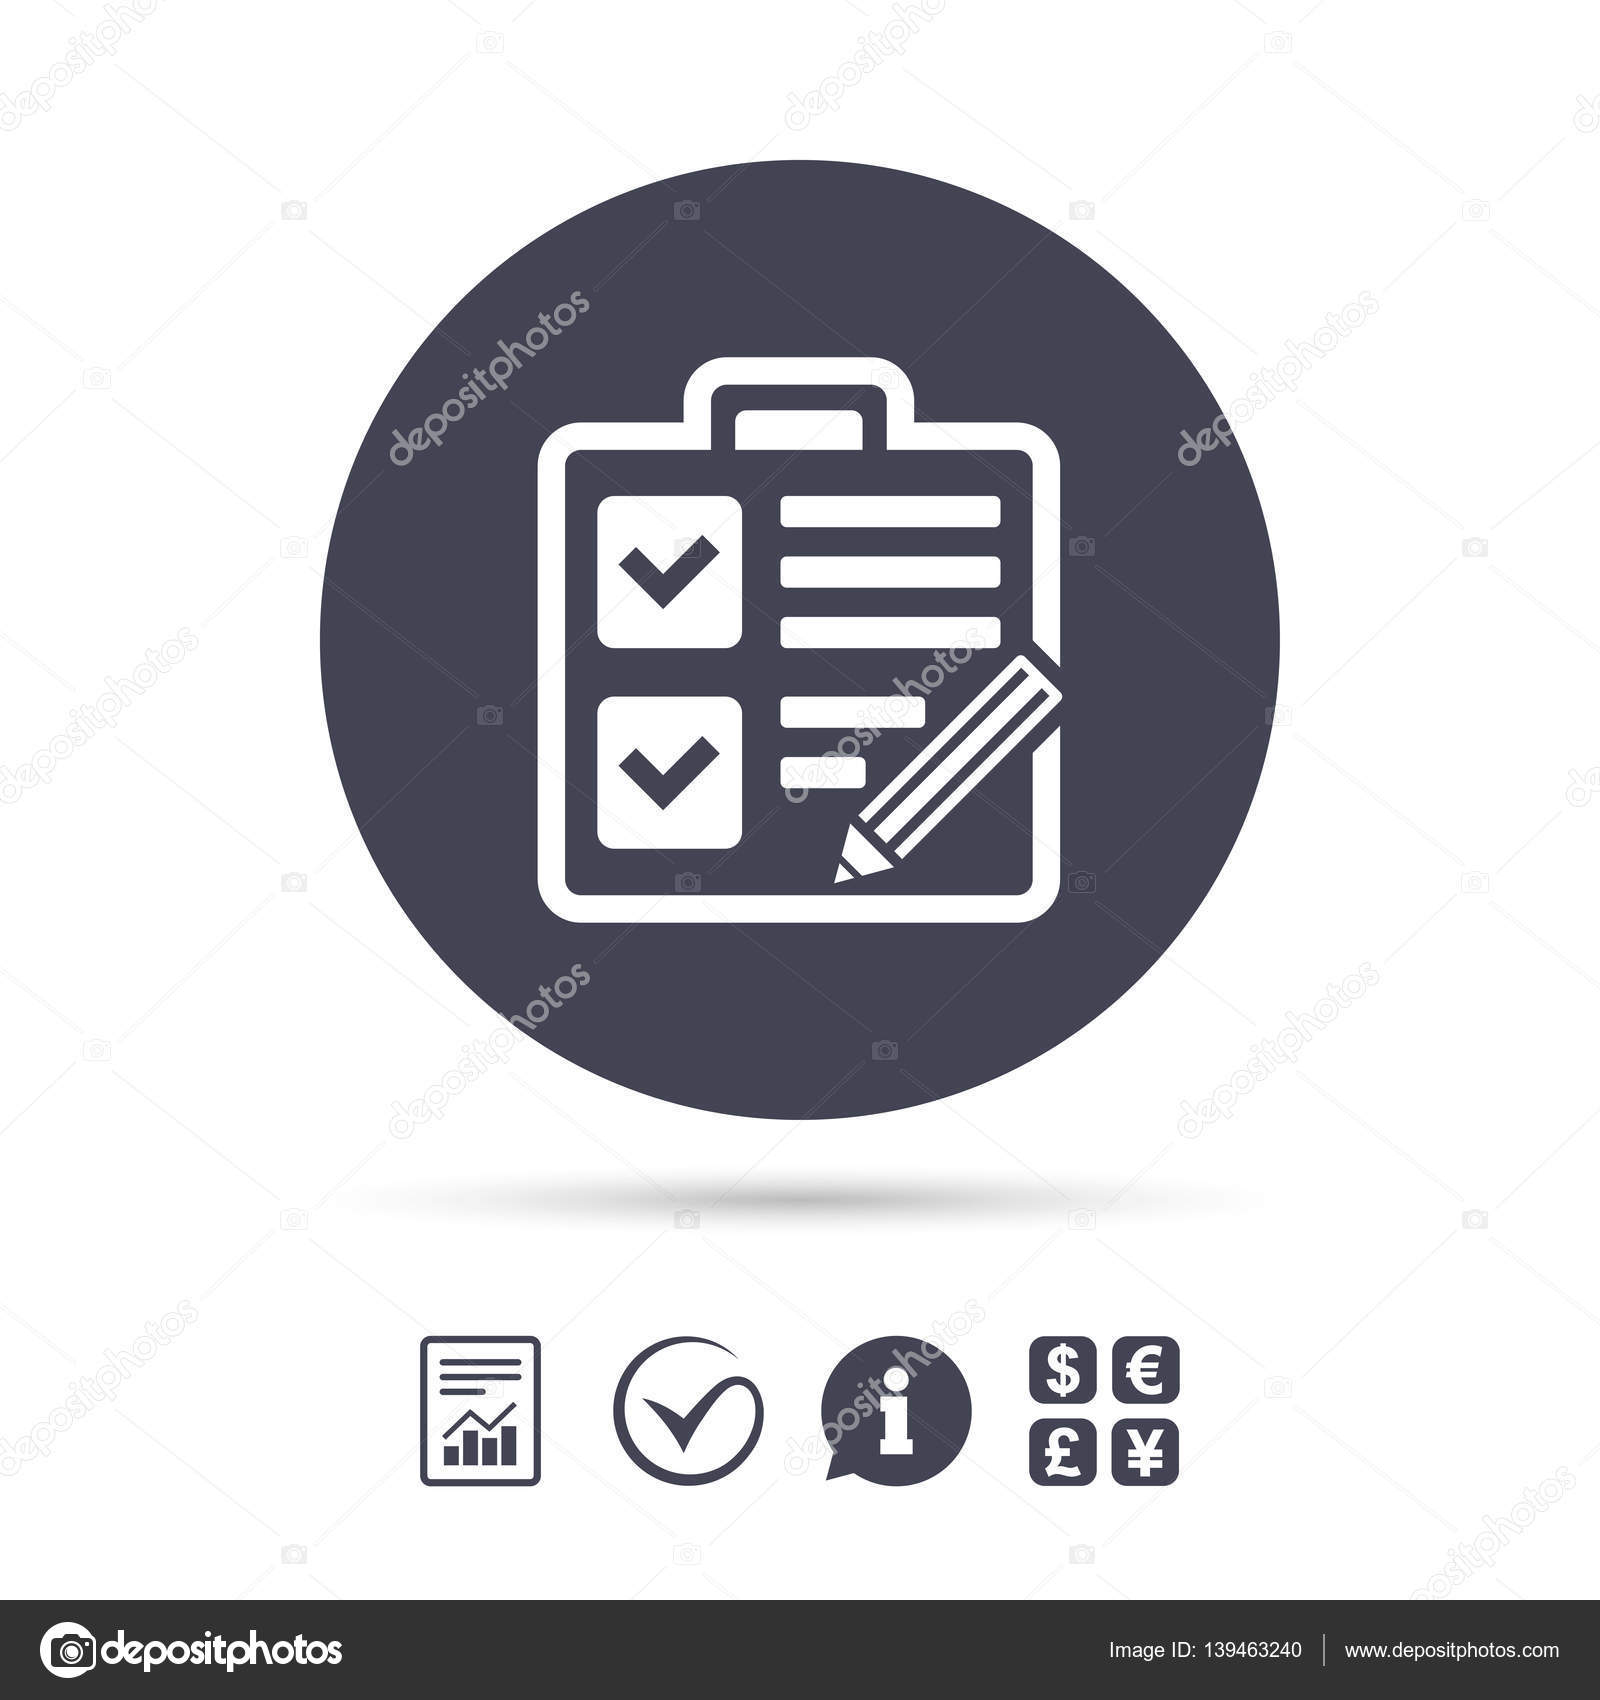 Checklist sign icon control list symbol stock vector control list symbol survey poll or questionnaire form report document information and check tick icons currency exchange vector vector by blankstock biocorpaavc